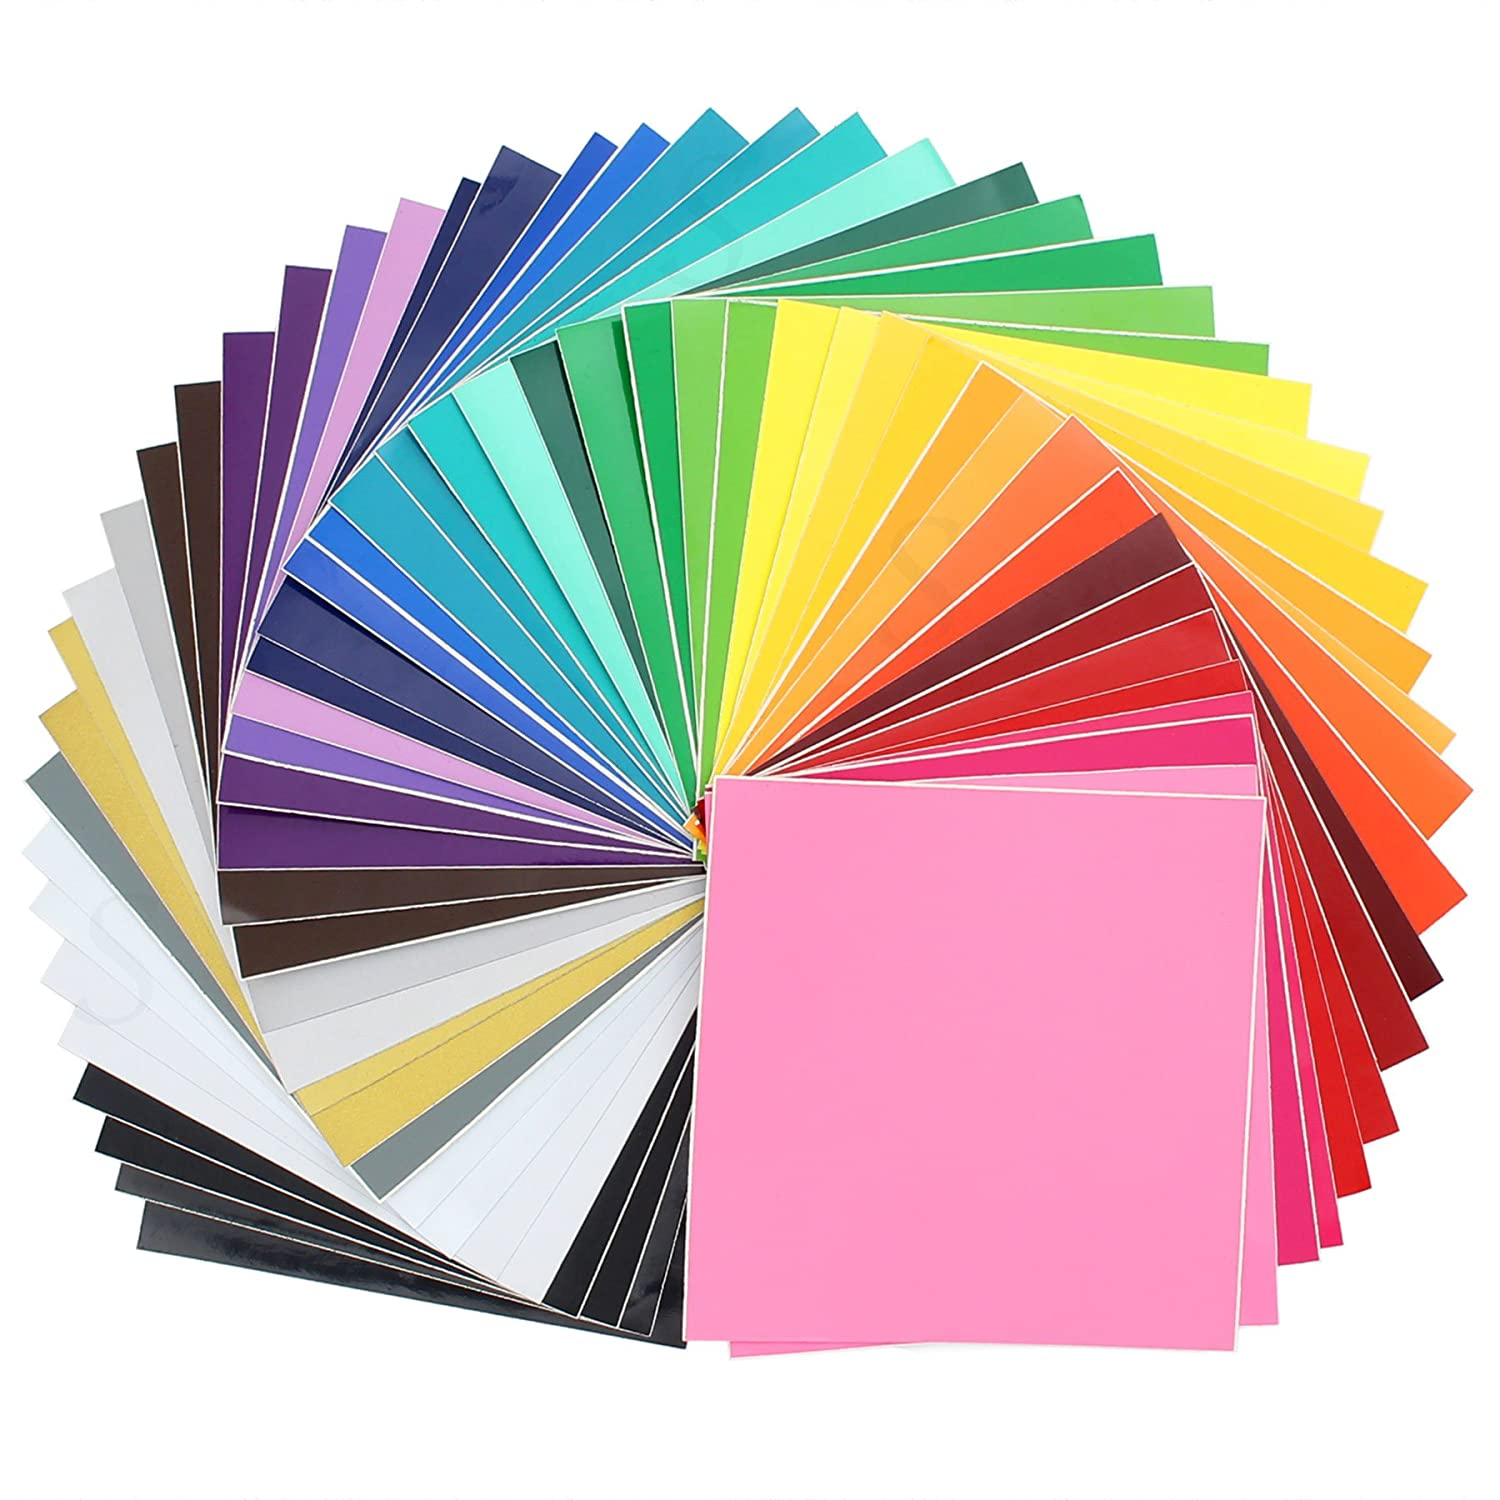 Oracal Assorted 631 and 651 Vinyl - 48 Pack of Top Colors - 12 x 12 Sheets VINYL-Mixed-48 Piece